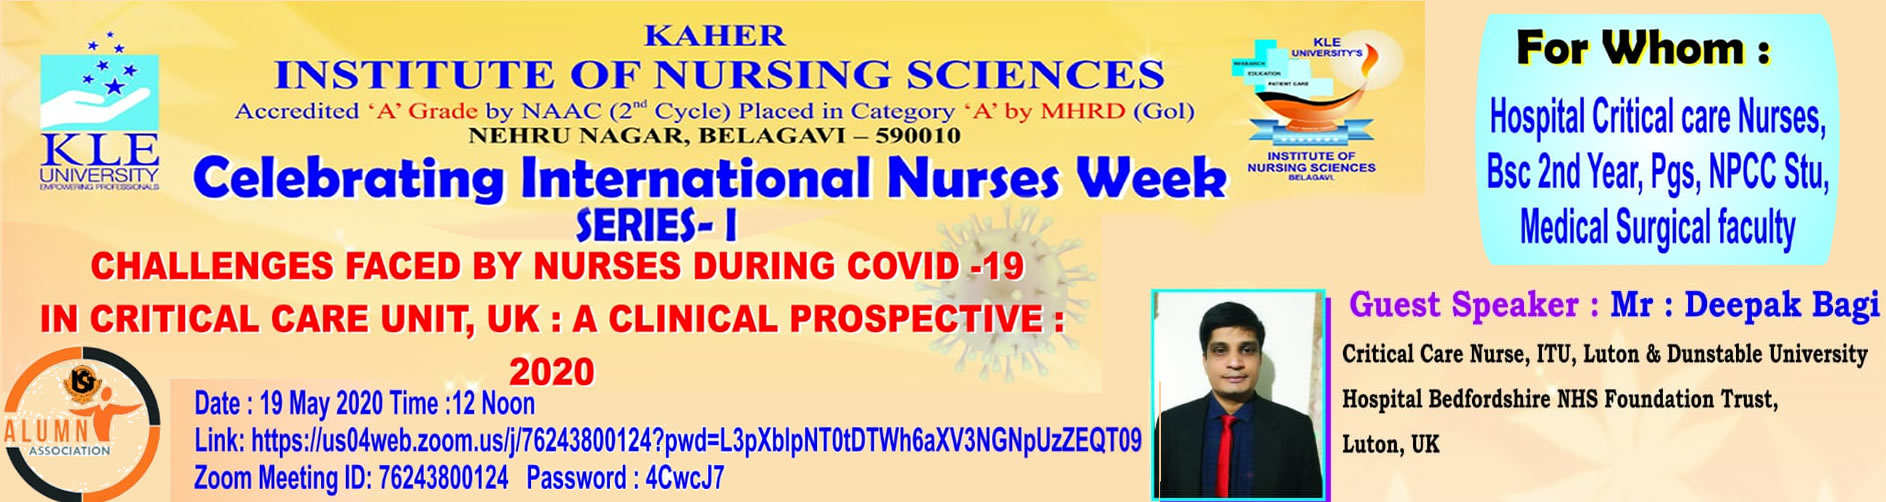 Celebrating International Nurses Week